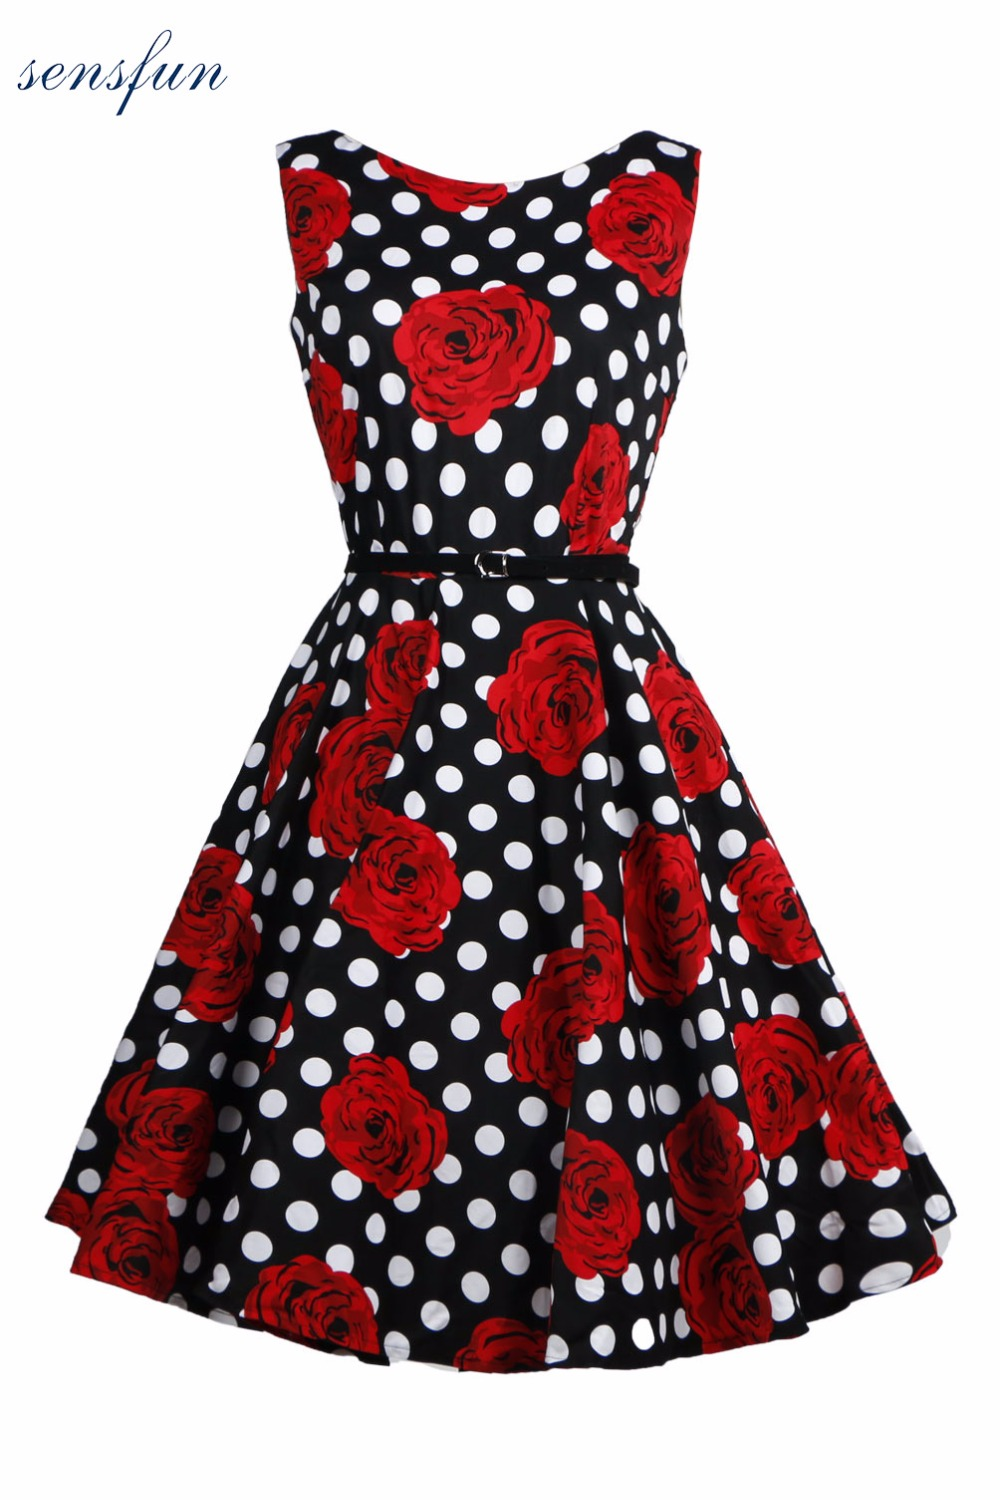 Sensfun Summer Dress Women Cotton Floral Print 1950s 60s Vintage Dress Elegant Vestidos Retra With Belt Party Dresses Sundress